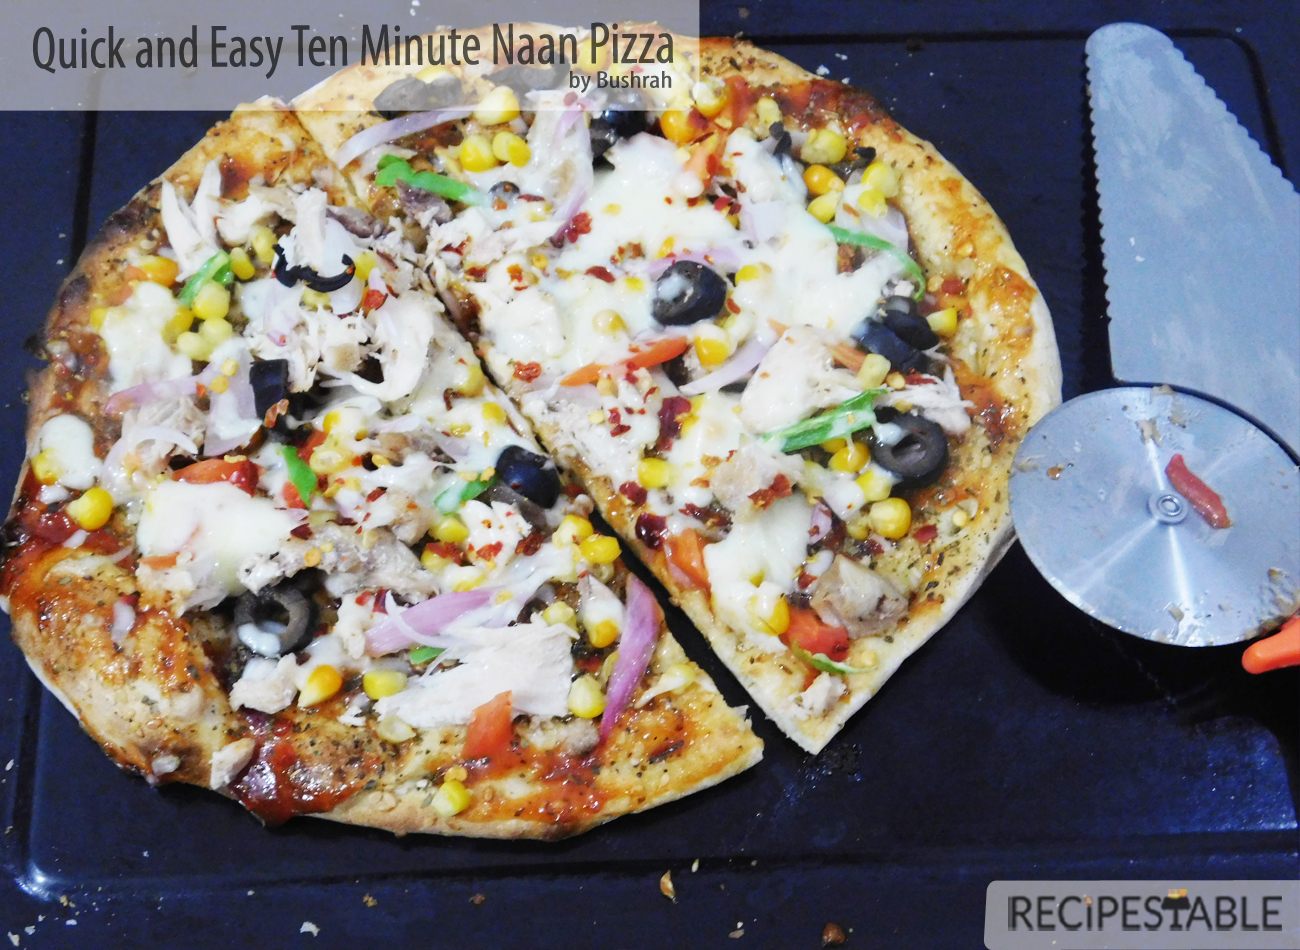 Quick and Easy Ten Minute Naan Pizza